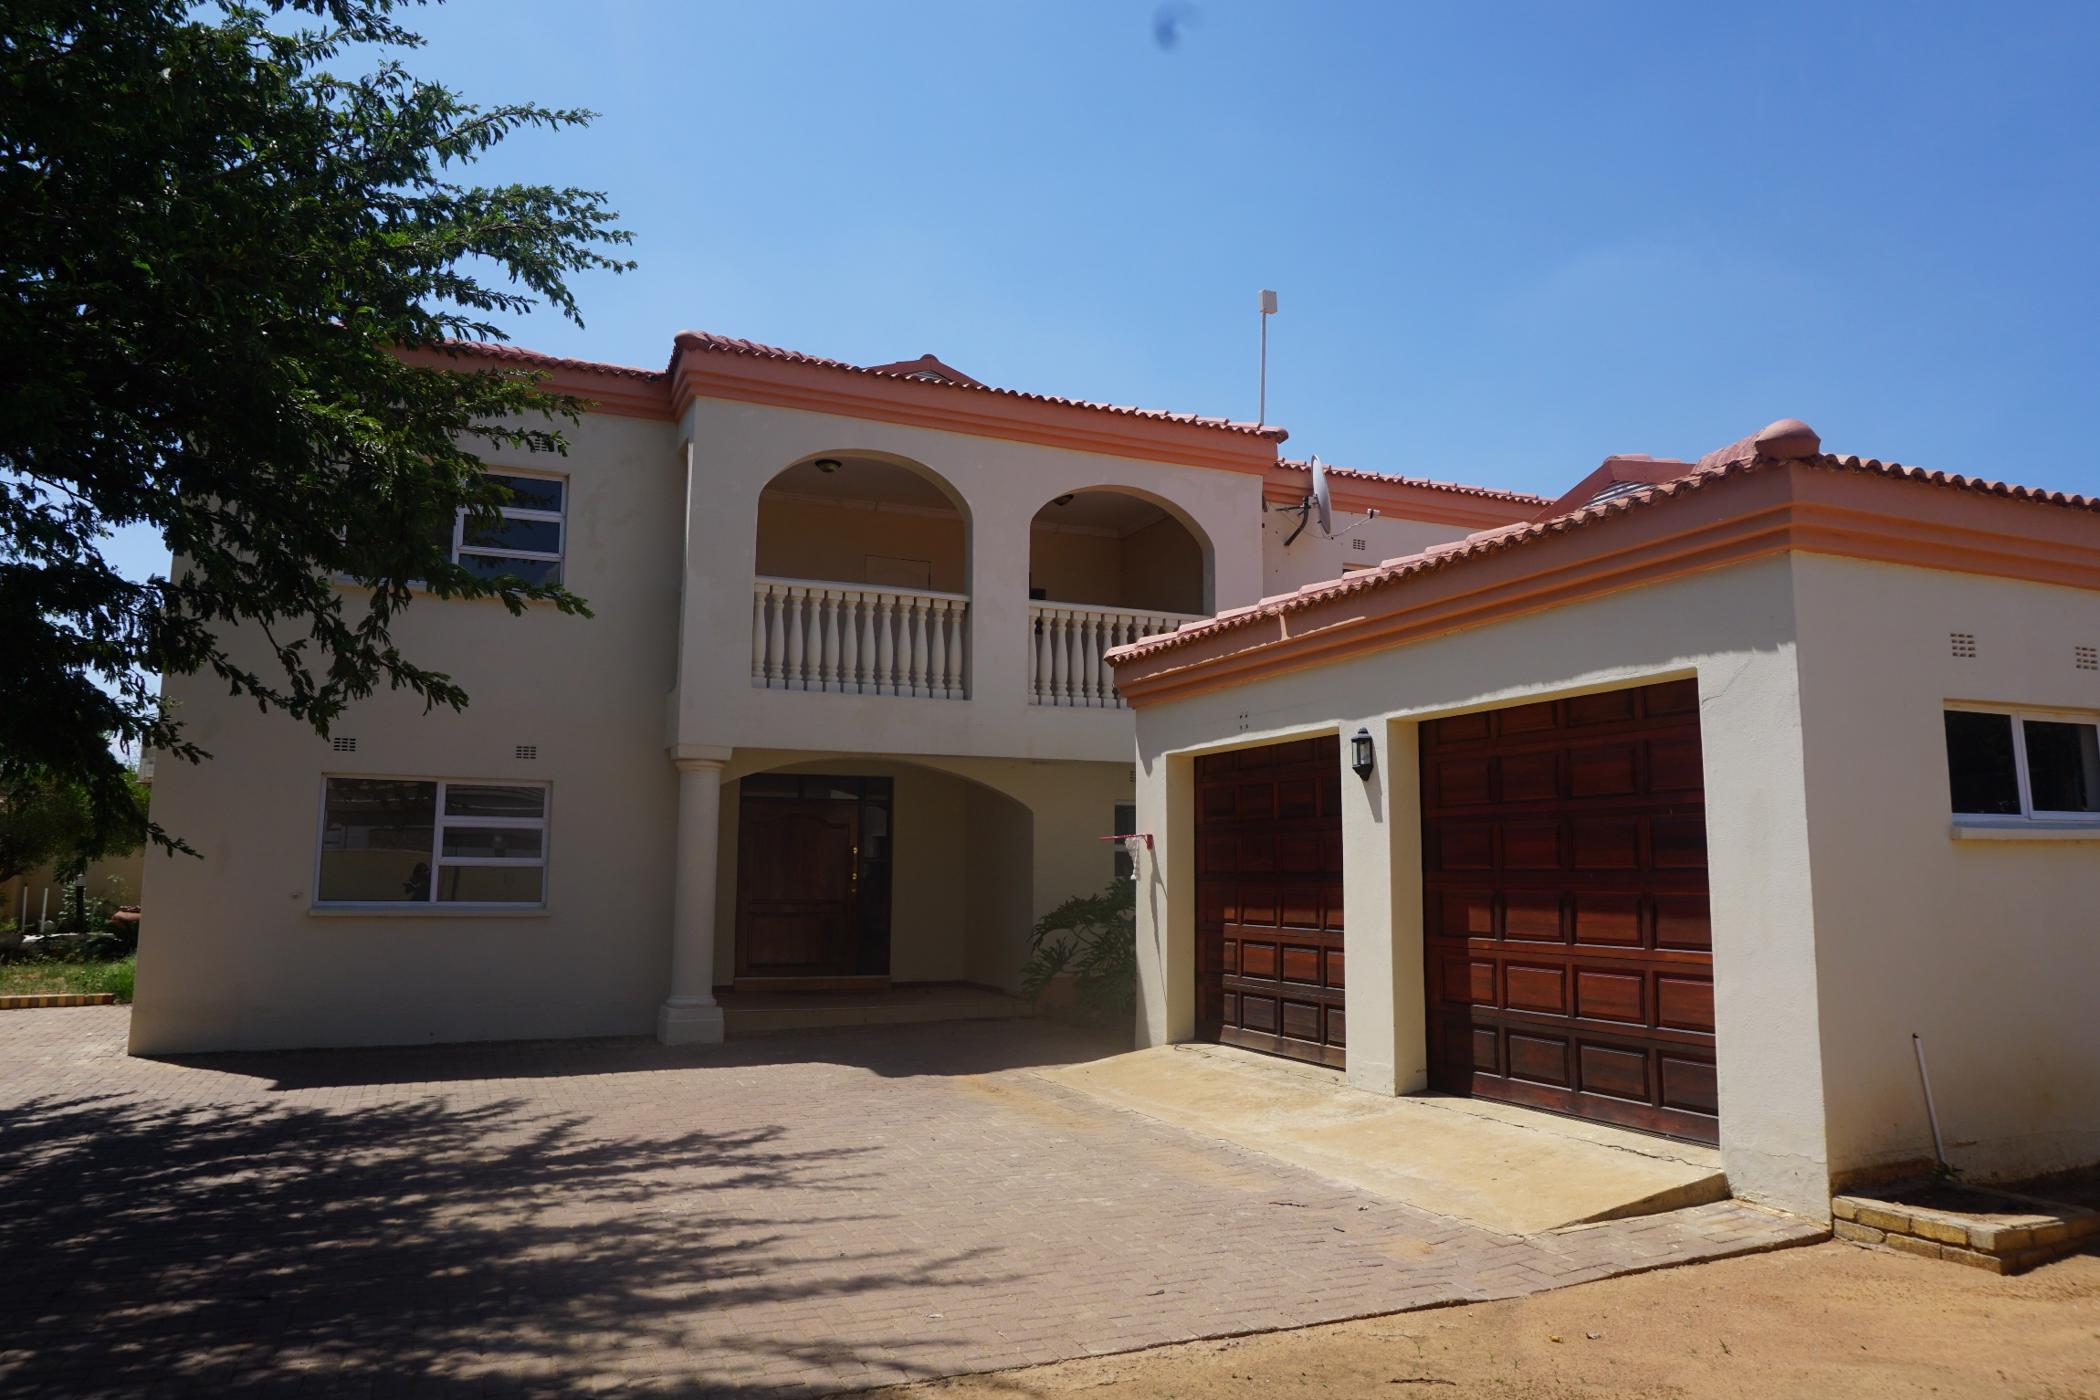 https://listing.pamgolding.co.za/images/properties/201901/1256835/H/1256835_H_34.jpg